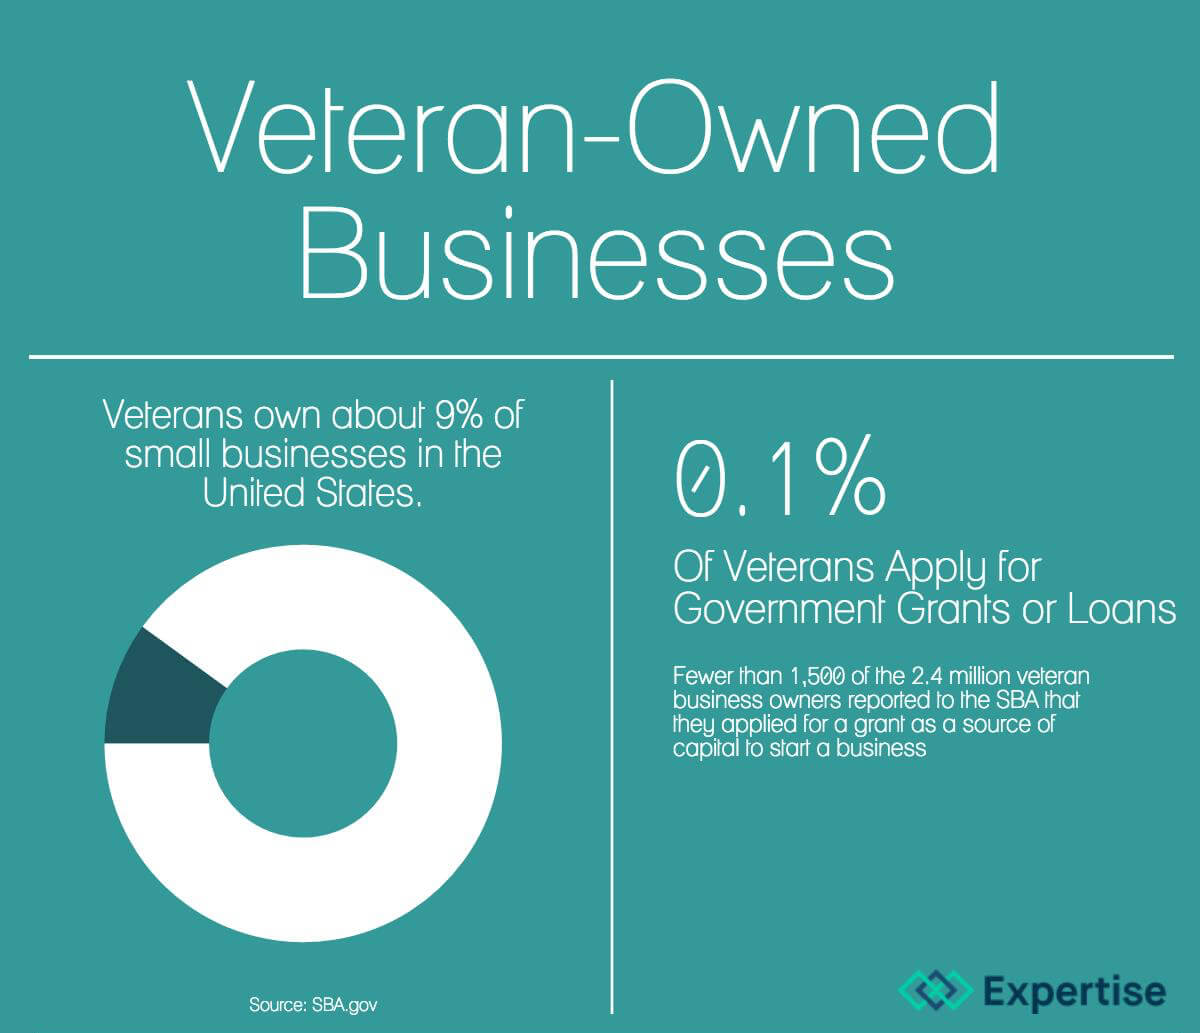 Veterans own 9% of SMBs, but only about .1% seek grants